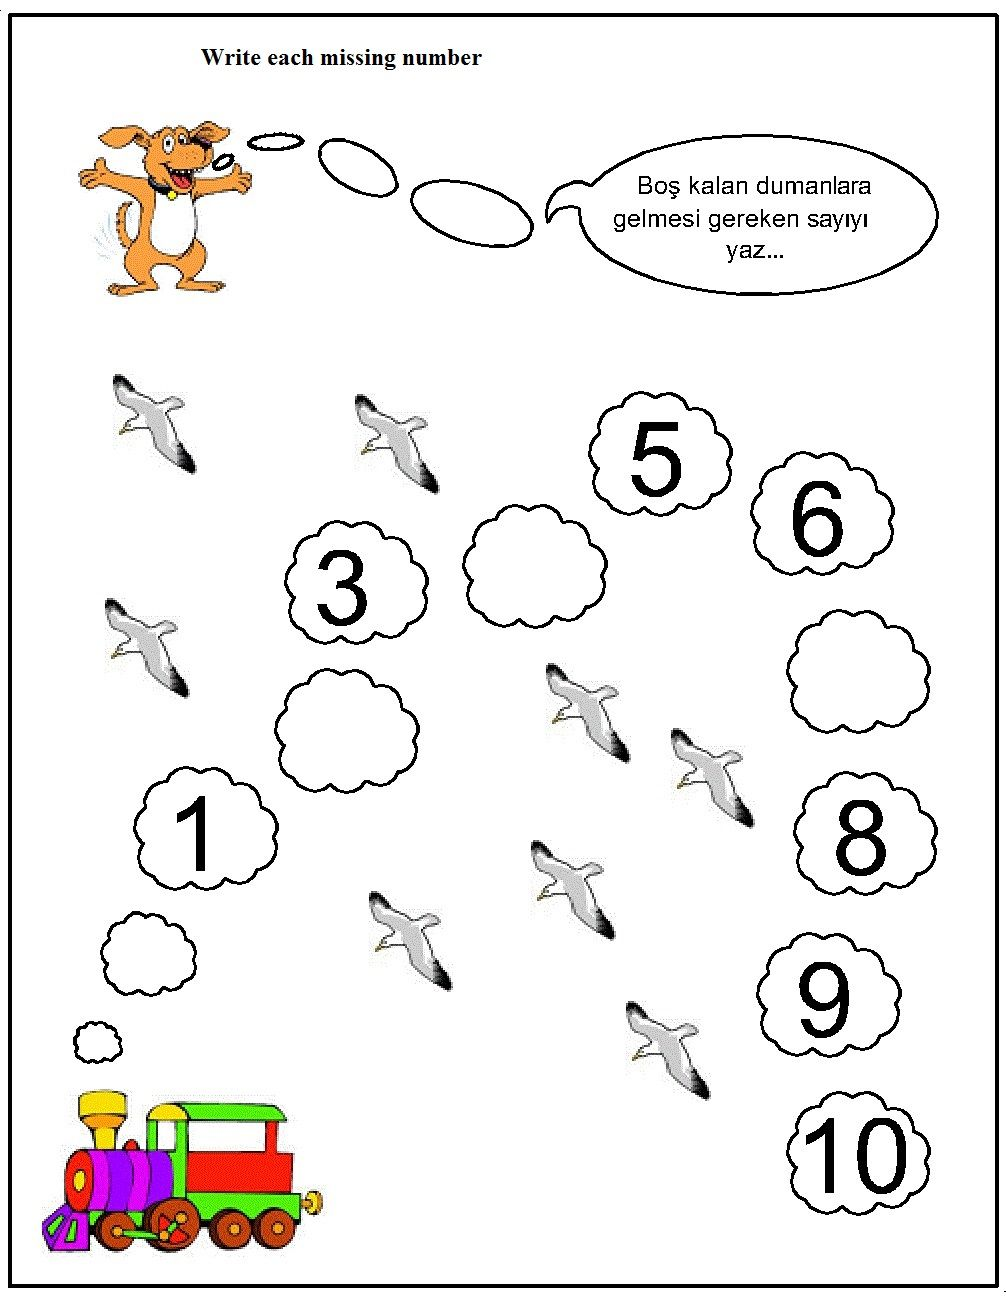 Missing number worksheet for kids(110) Number